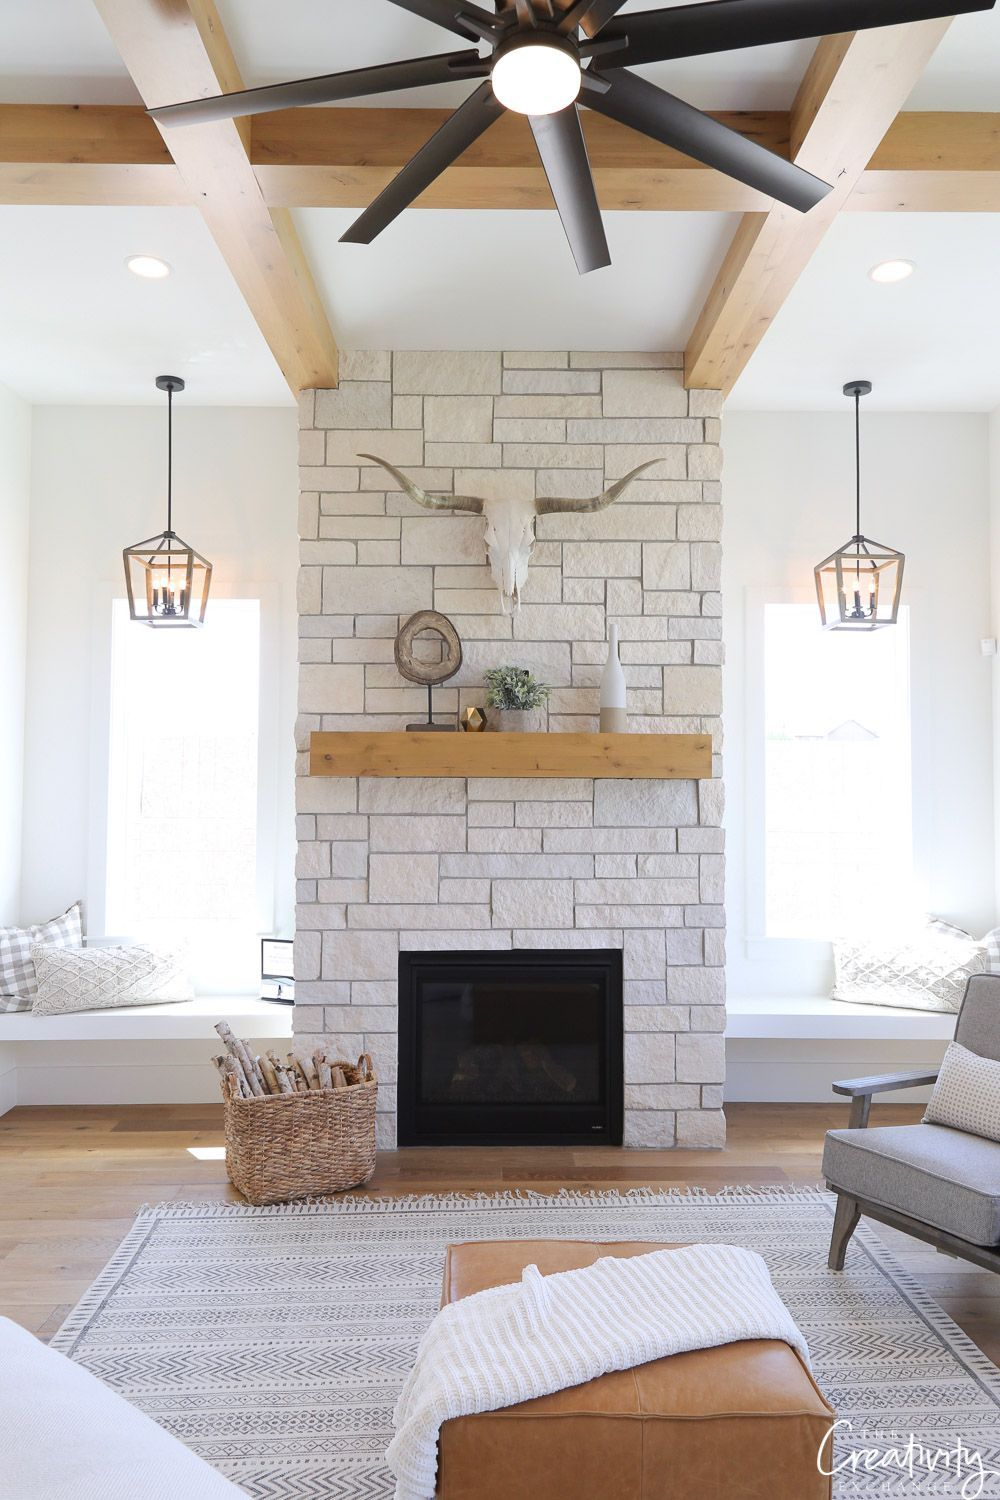 2018 Utah Valley Parade Of Homes Part 2 In 2020 Living